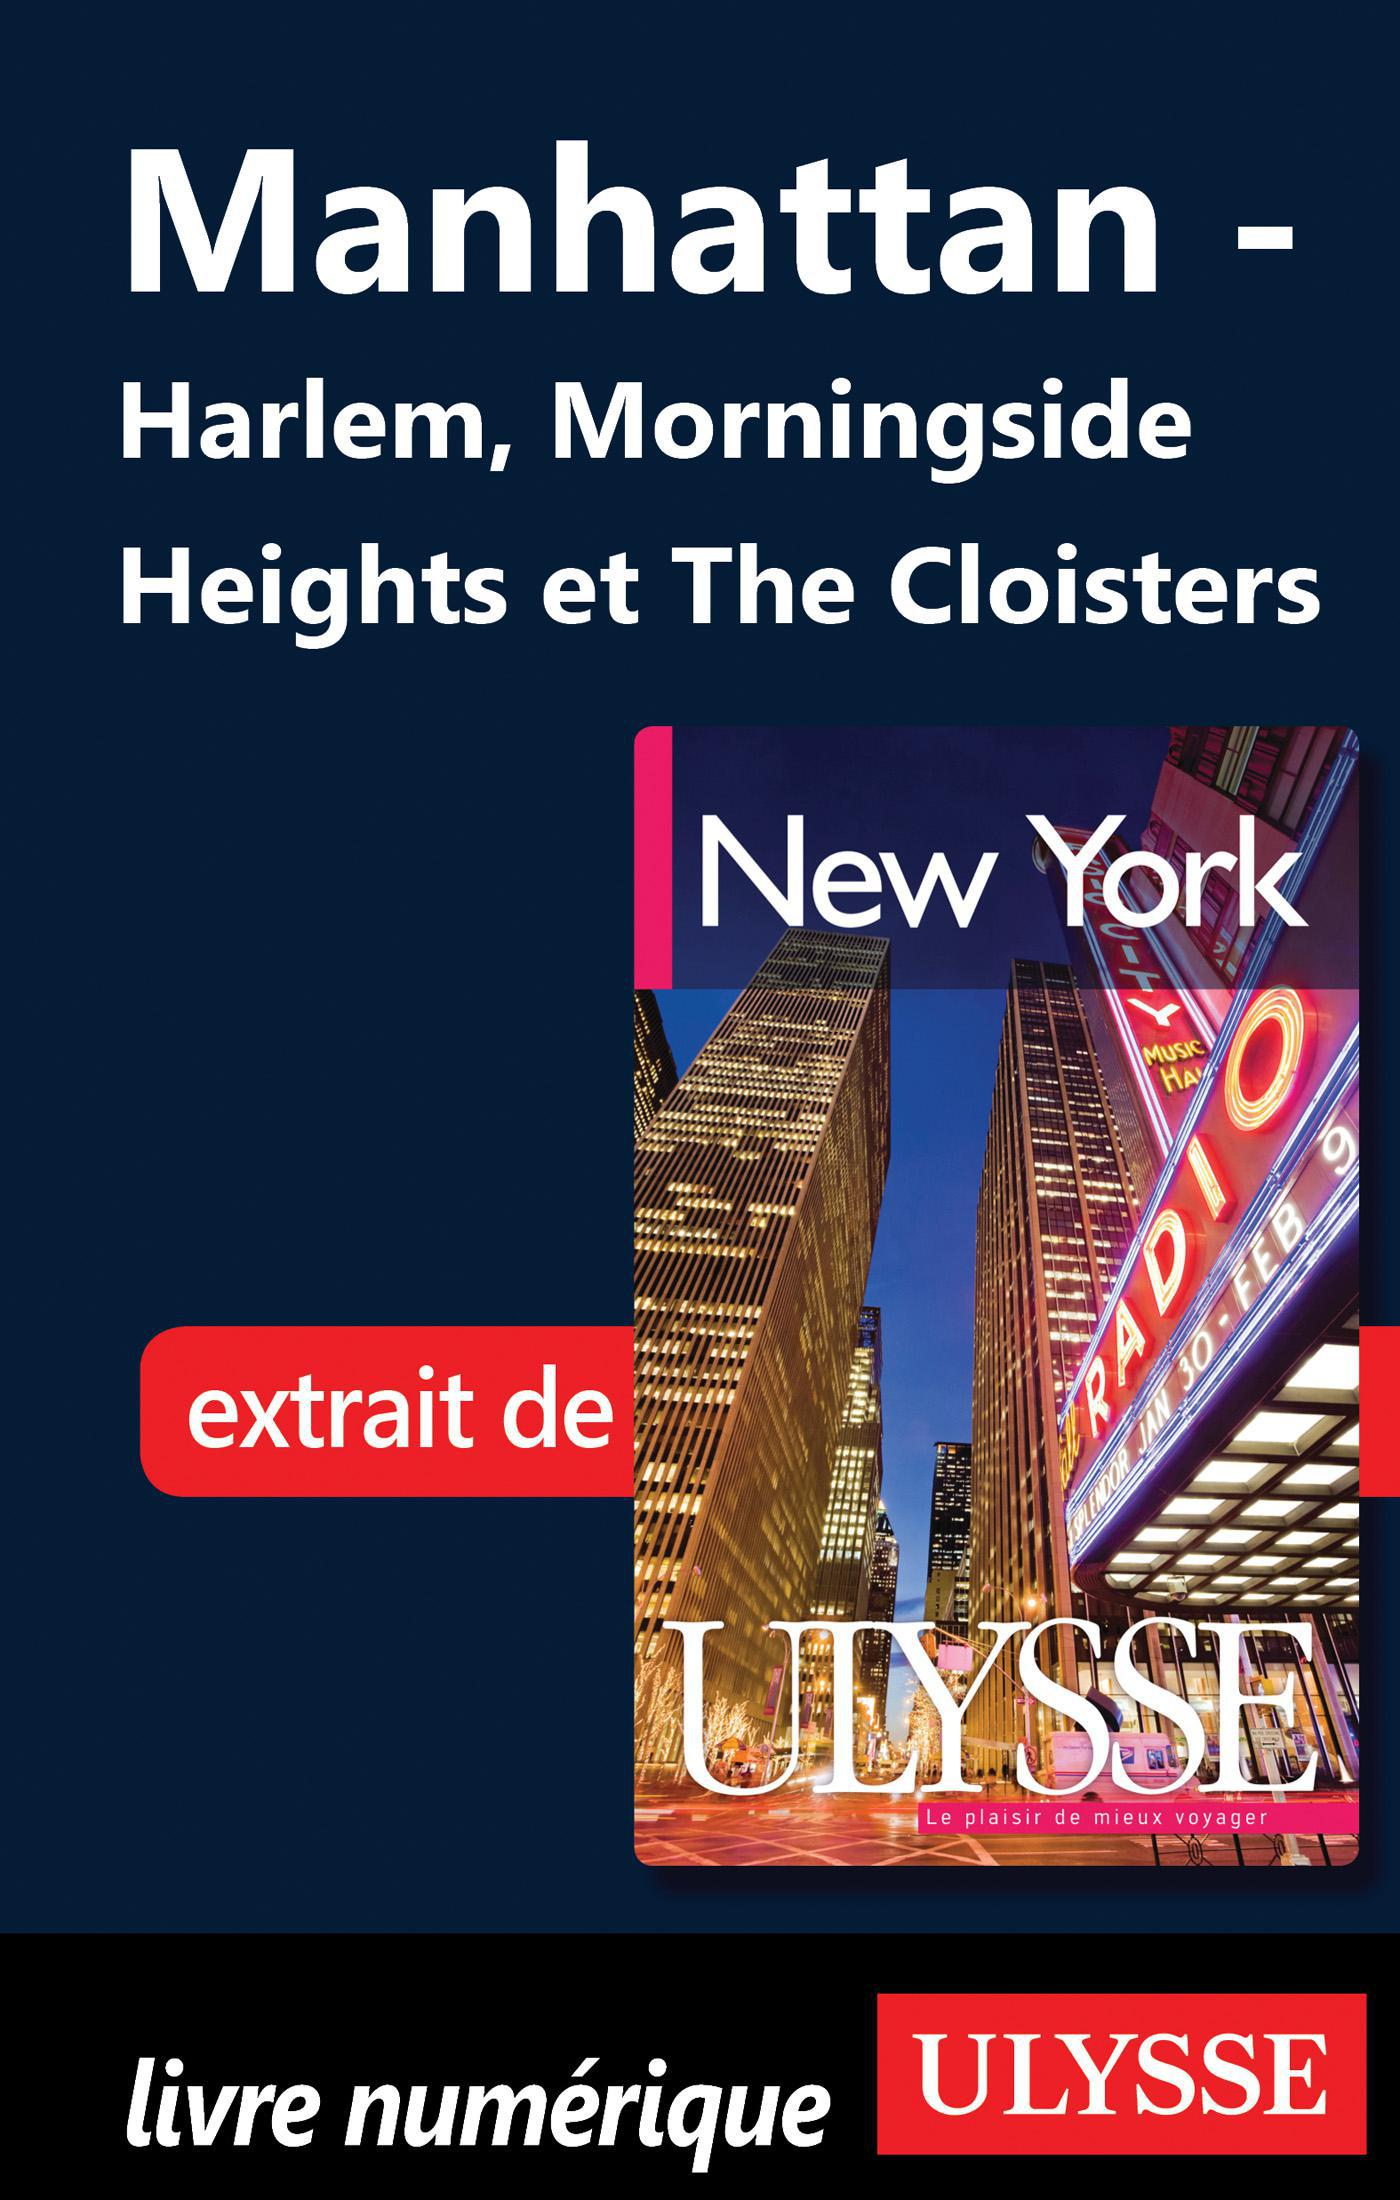 Manhattan - Harlem, Morningside Heights et The Cloisters